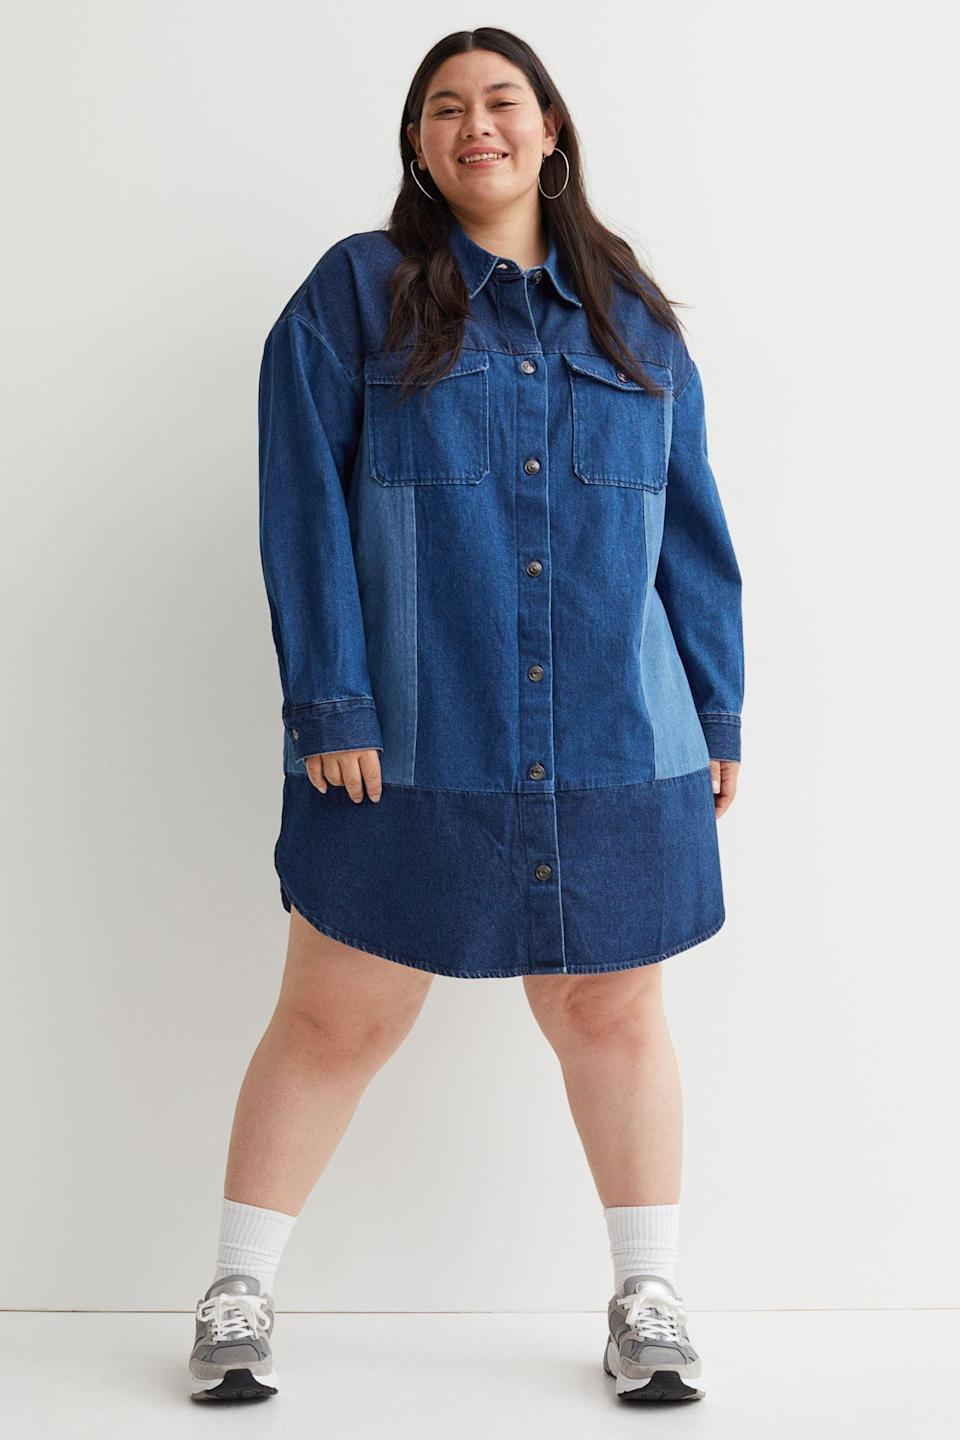 <p>We love the patches on this <span>H&amp;M+ Shirt Dress</span> ($35), which adds a nice visual effect. Pair it with sneakers or Chelsea boots for an effortless and laidback look.</p>